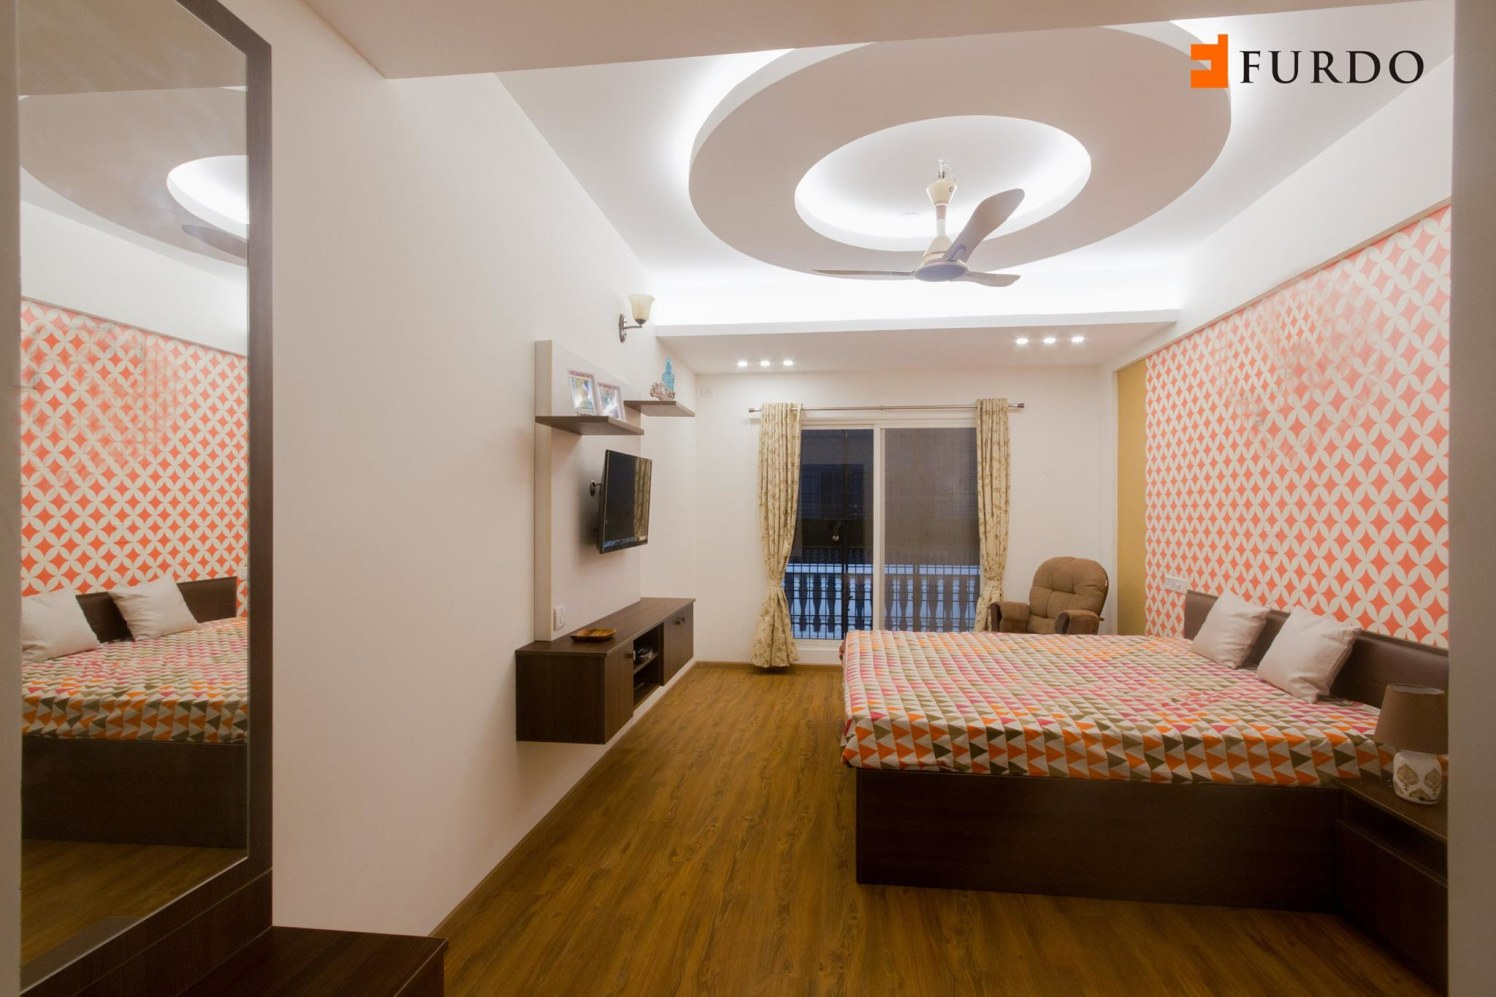 Bedroom With Artistic False Ceiling And Wall Art by Furdo.com Bedroom Modern | Interior Design Photos & Ideas